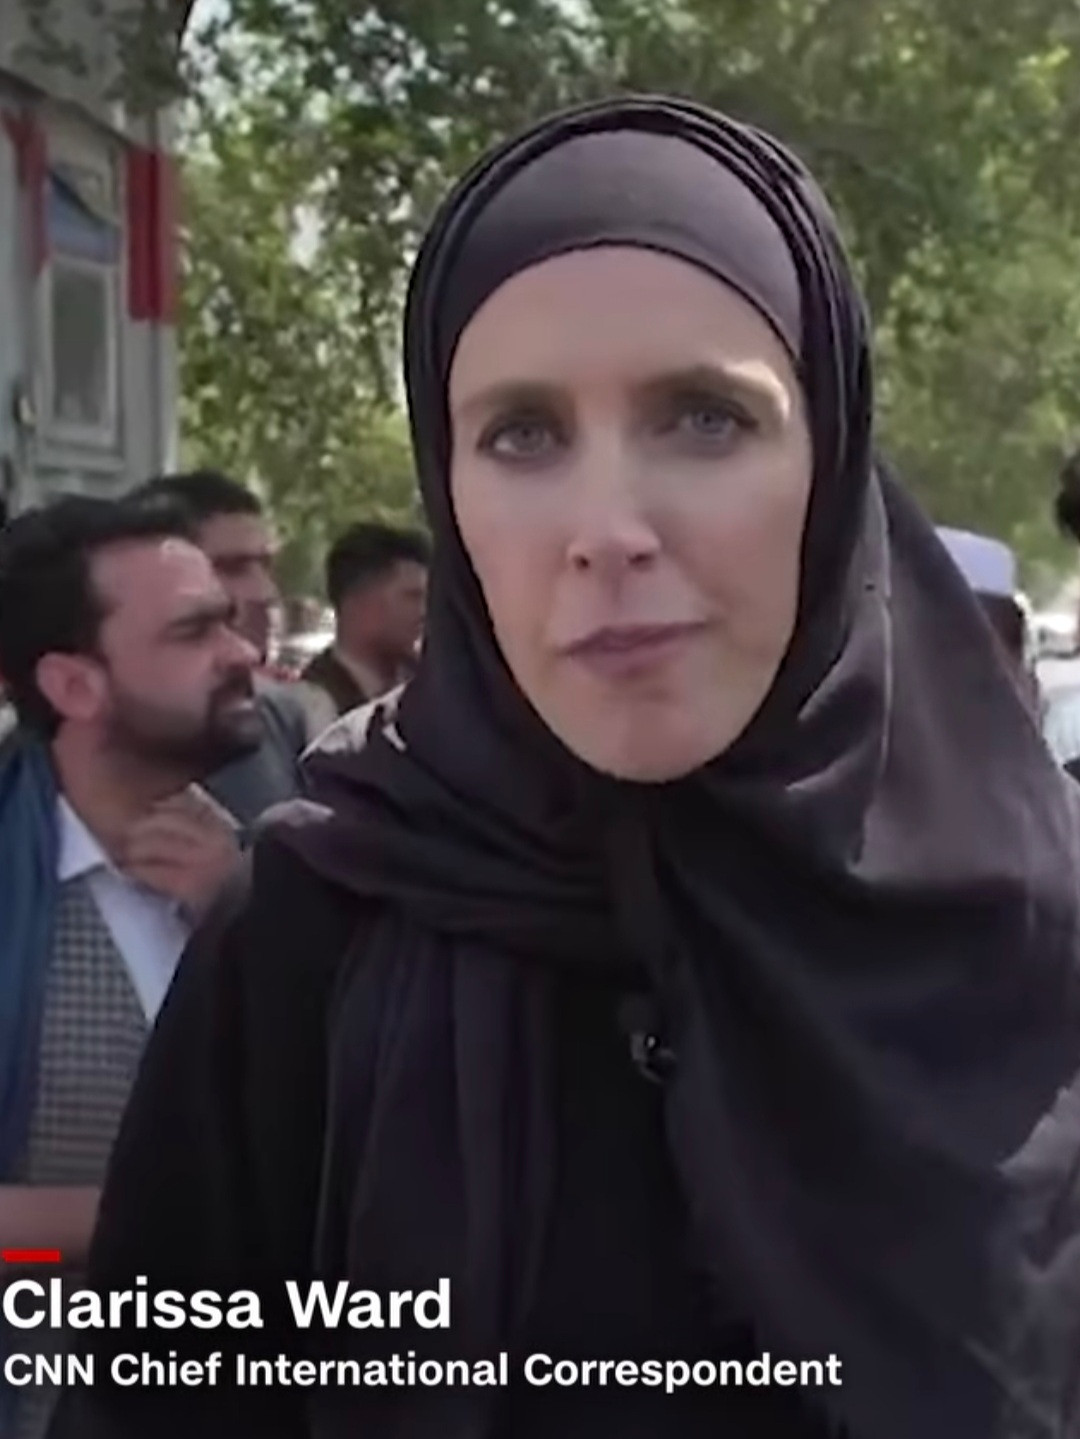 CNN reporter forced to wear hijab after the fall of Kabul to the Taliban as new rules for women emerge (photos)